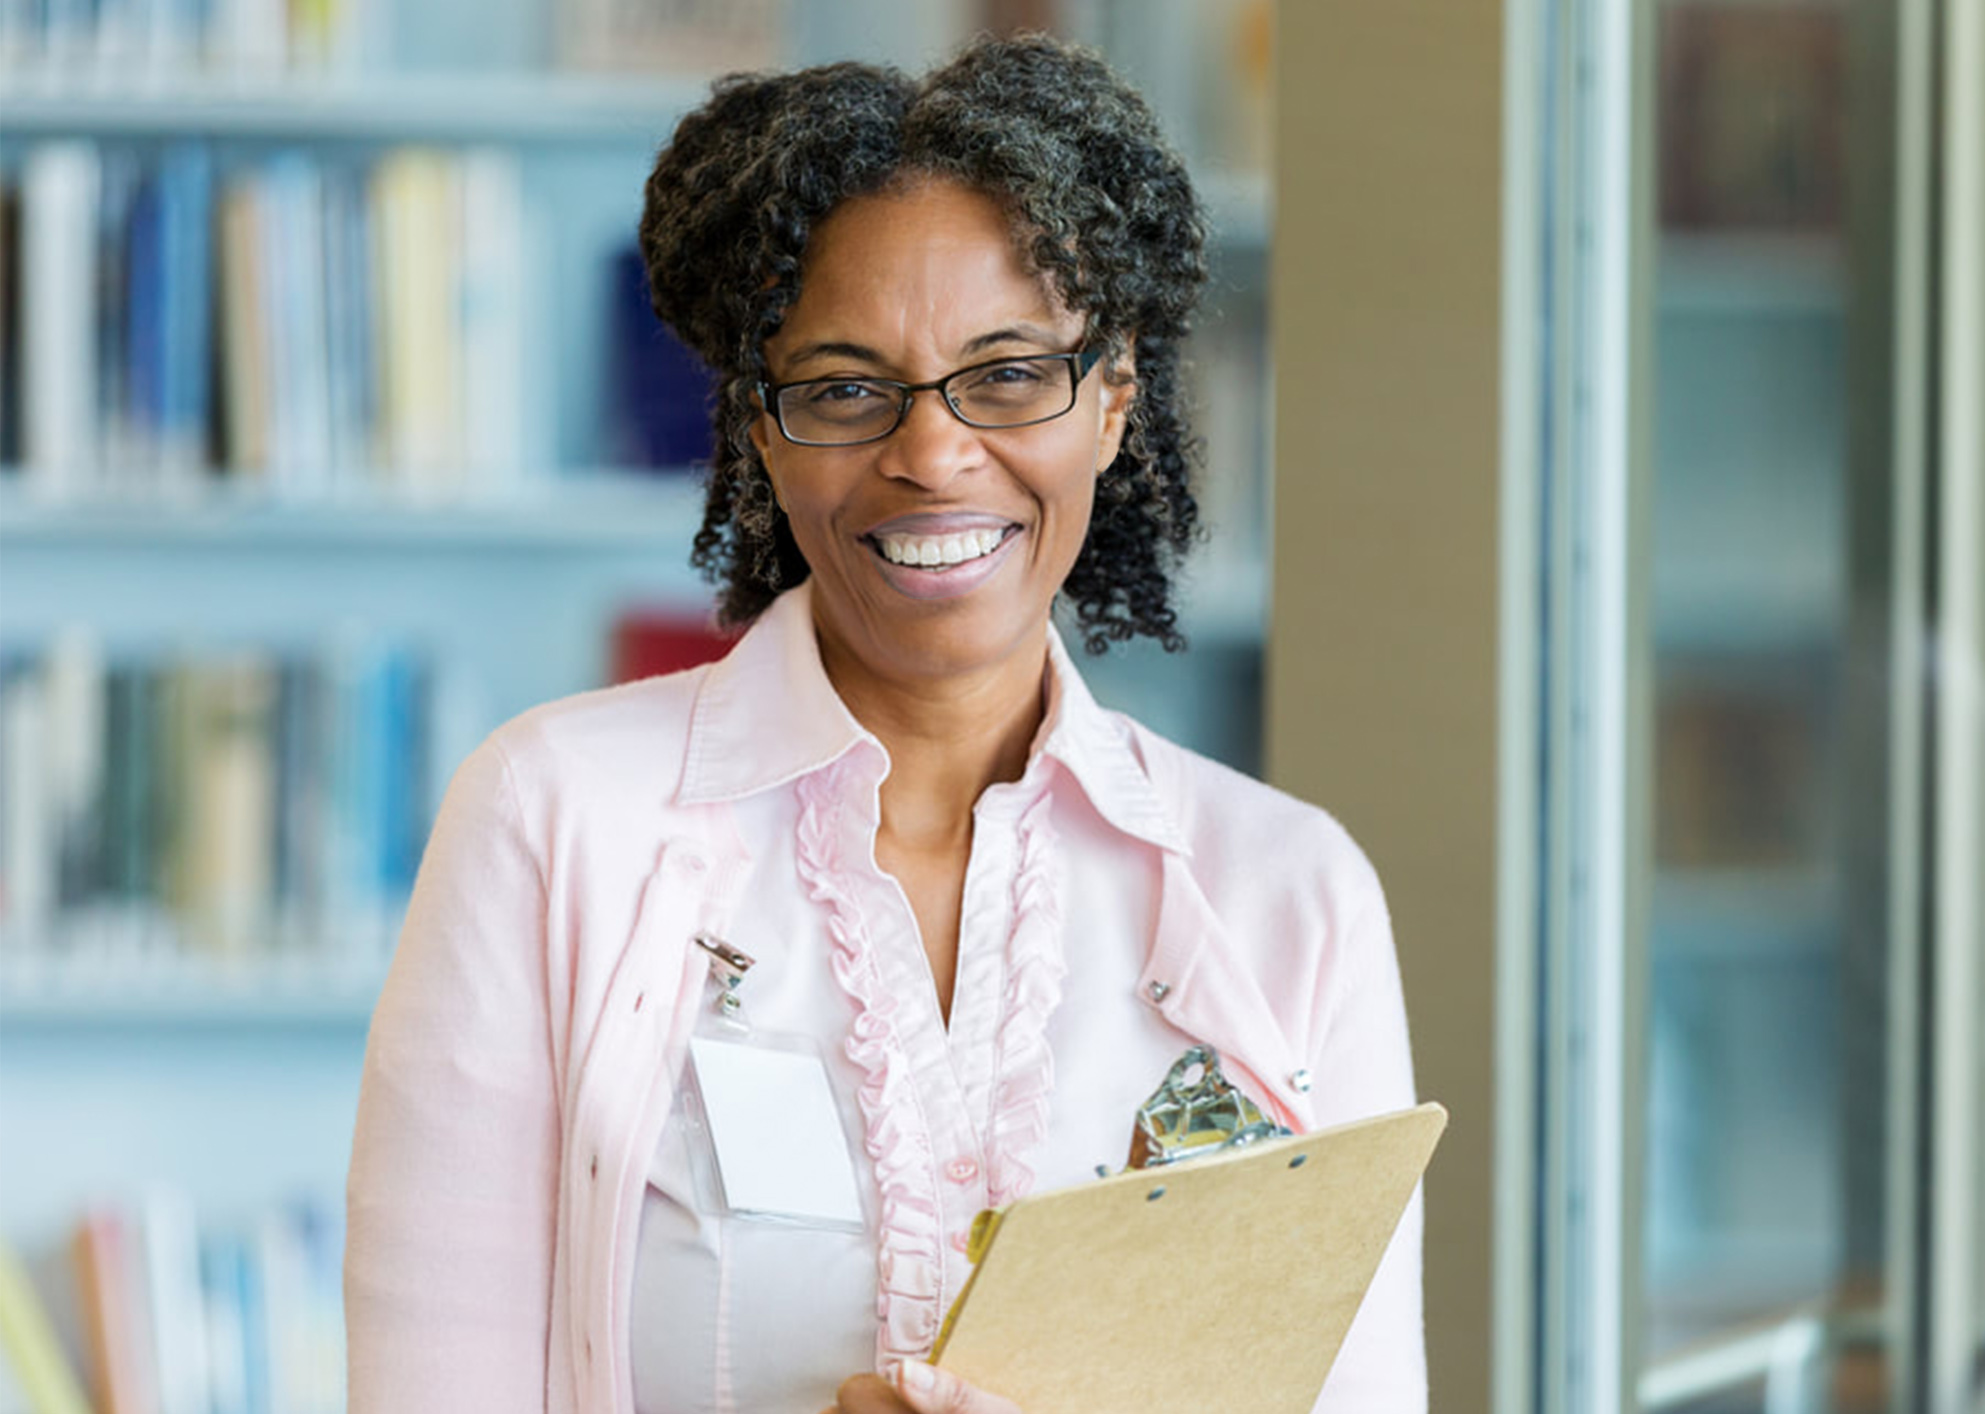 an smiling african american older woman with glasses. she is holding a clipboard in front of bookshelves filled with books. She is wearing a light pink blouse and cardigan with a name tag on her shirt.